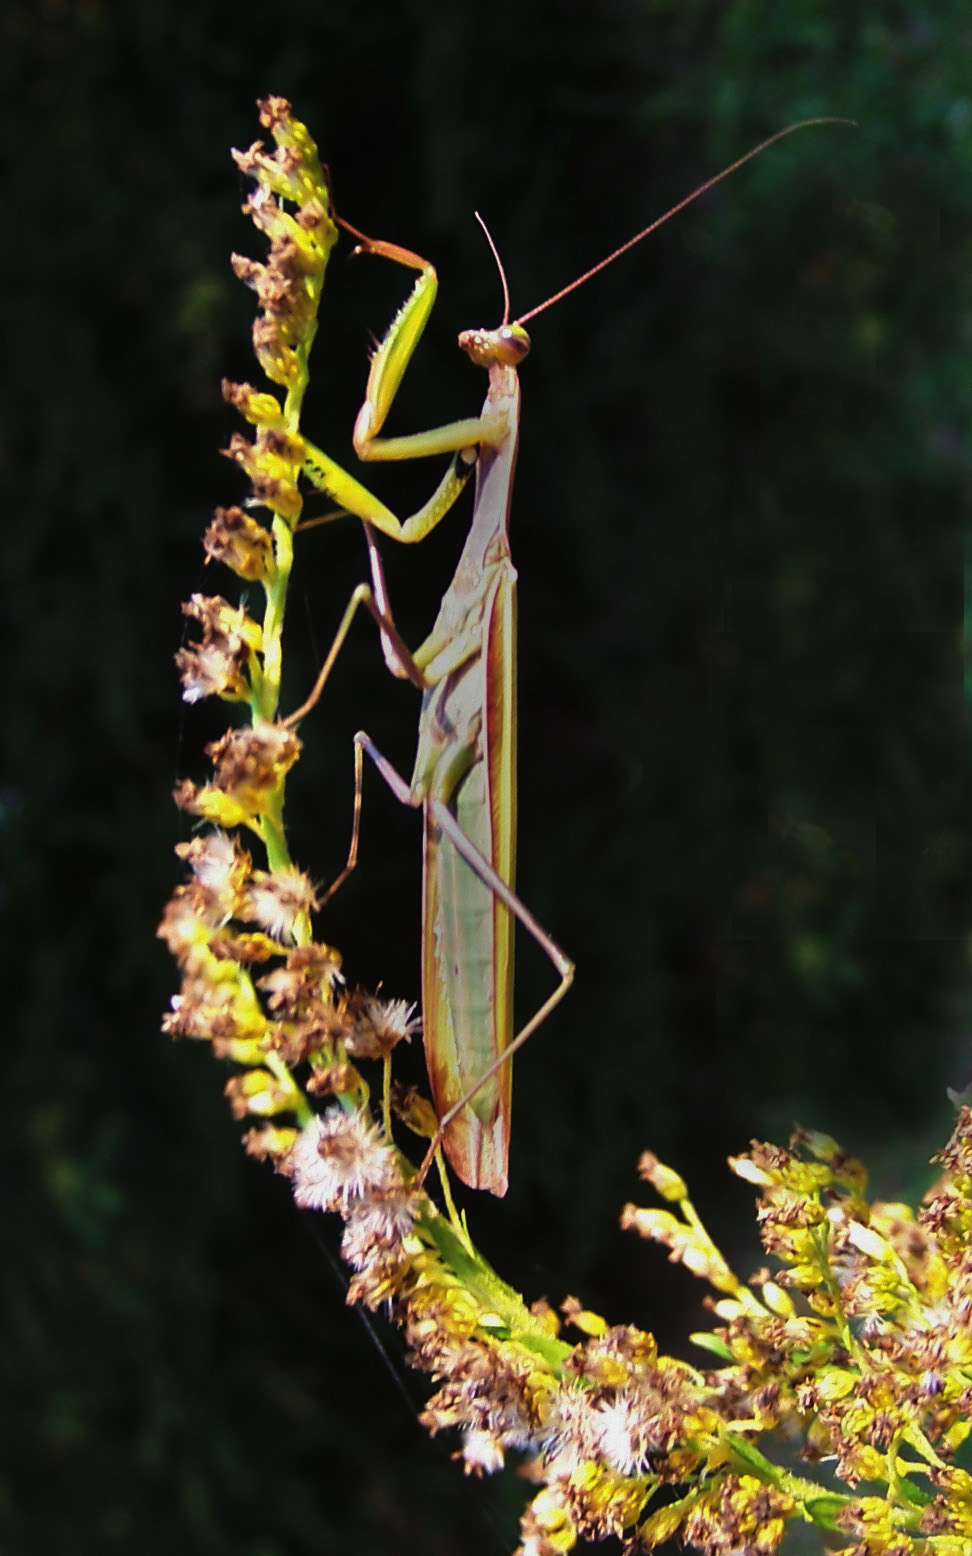 More than one kind of mantis in the meadows